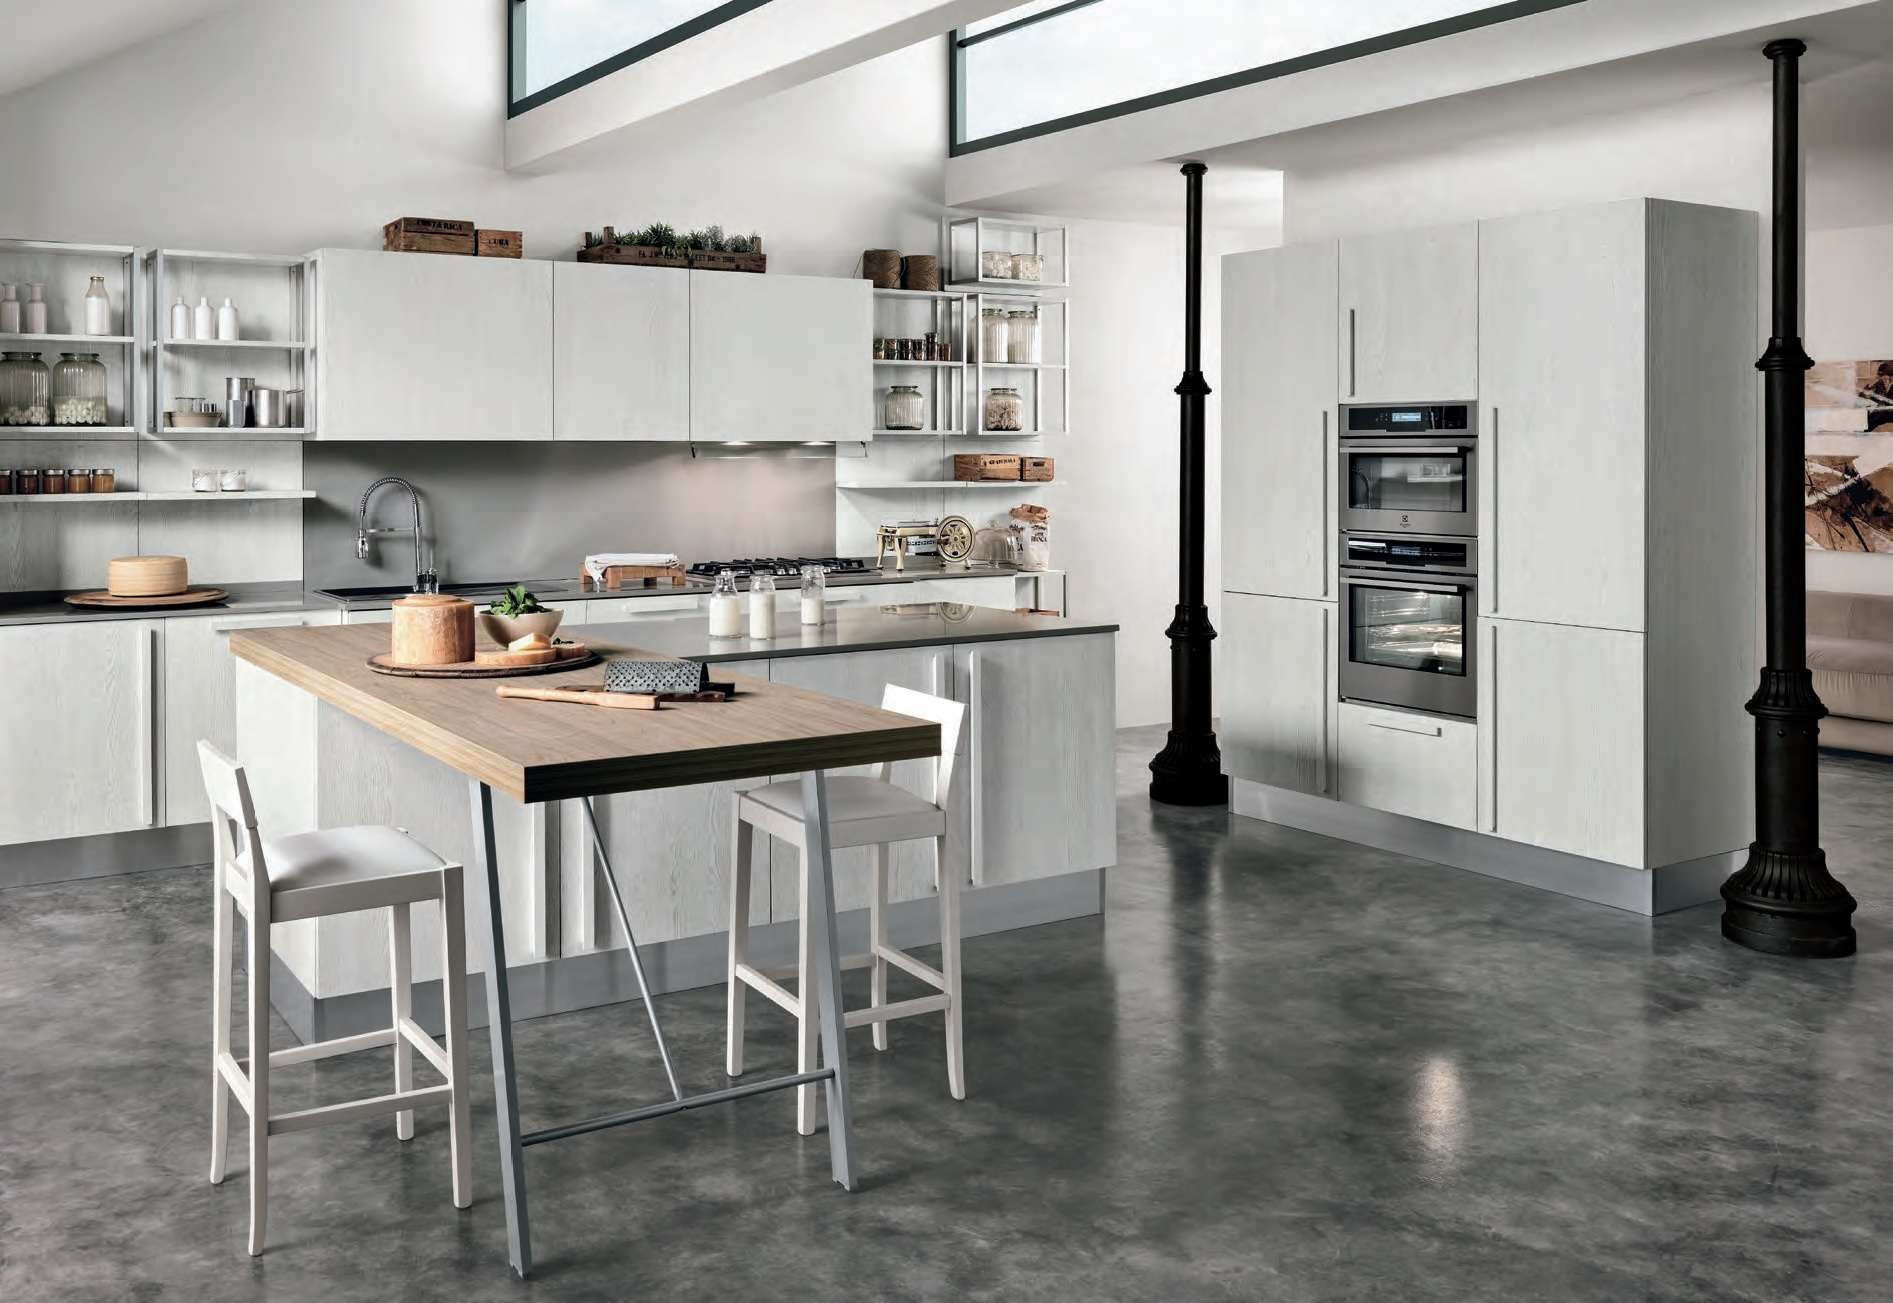 Cucina Essenza design moderno accessibile